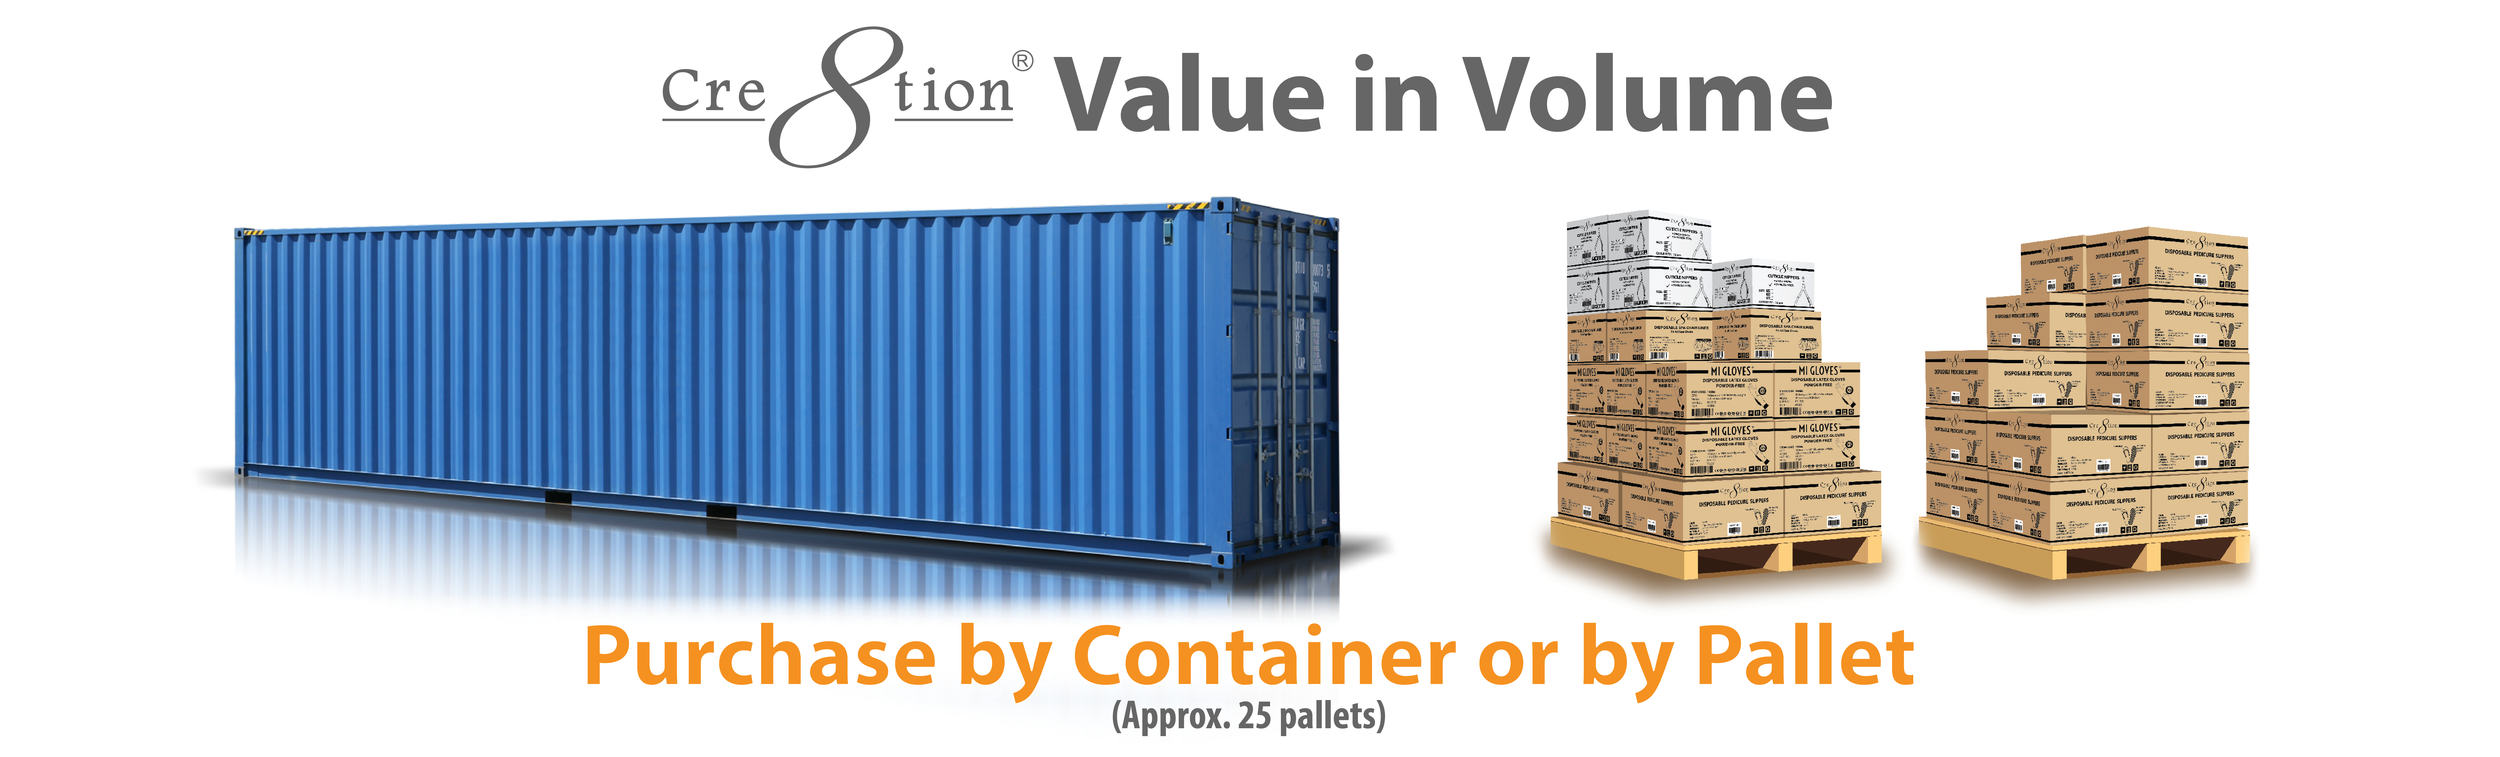 Container Deal Banners - Feb 2019_Cre8tion Banner.png